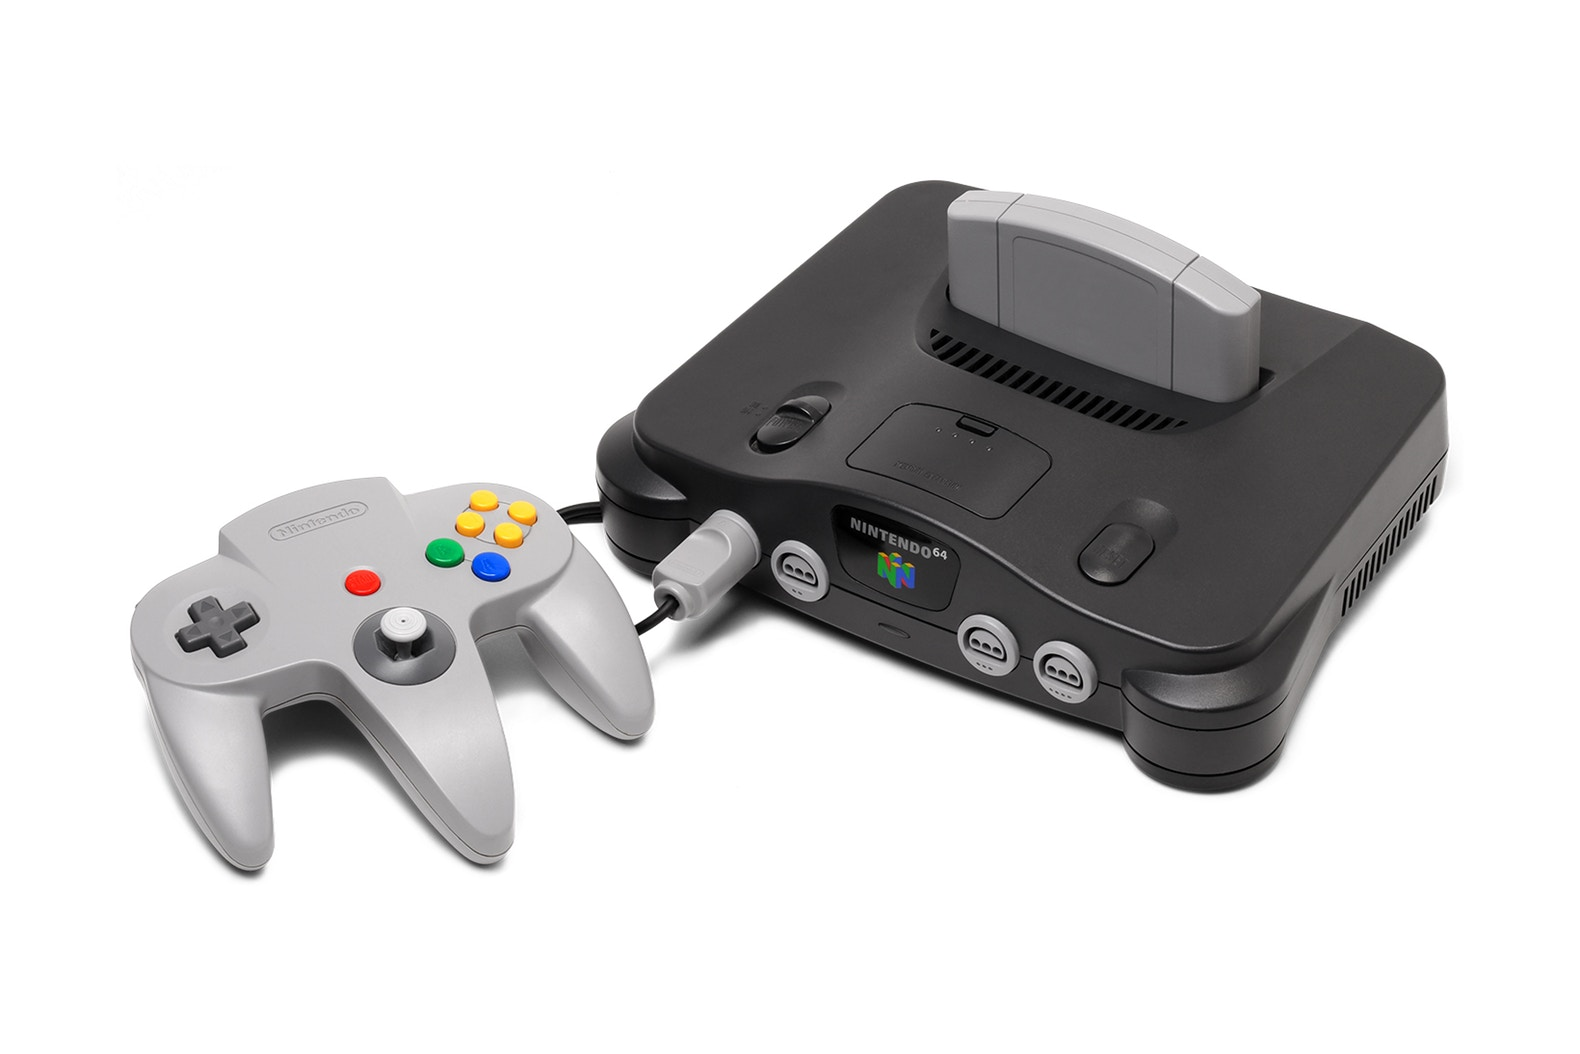 Nintendo files trademark for N64 controller in Europe, fuels N64 classic rumors